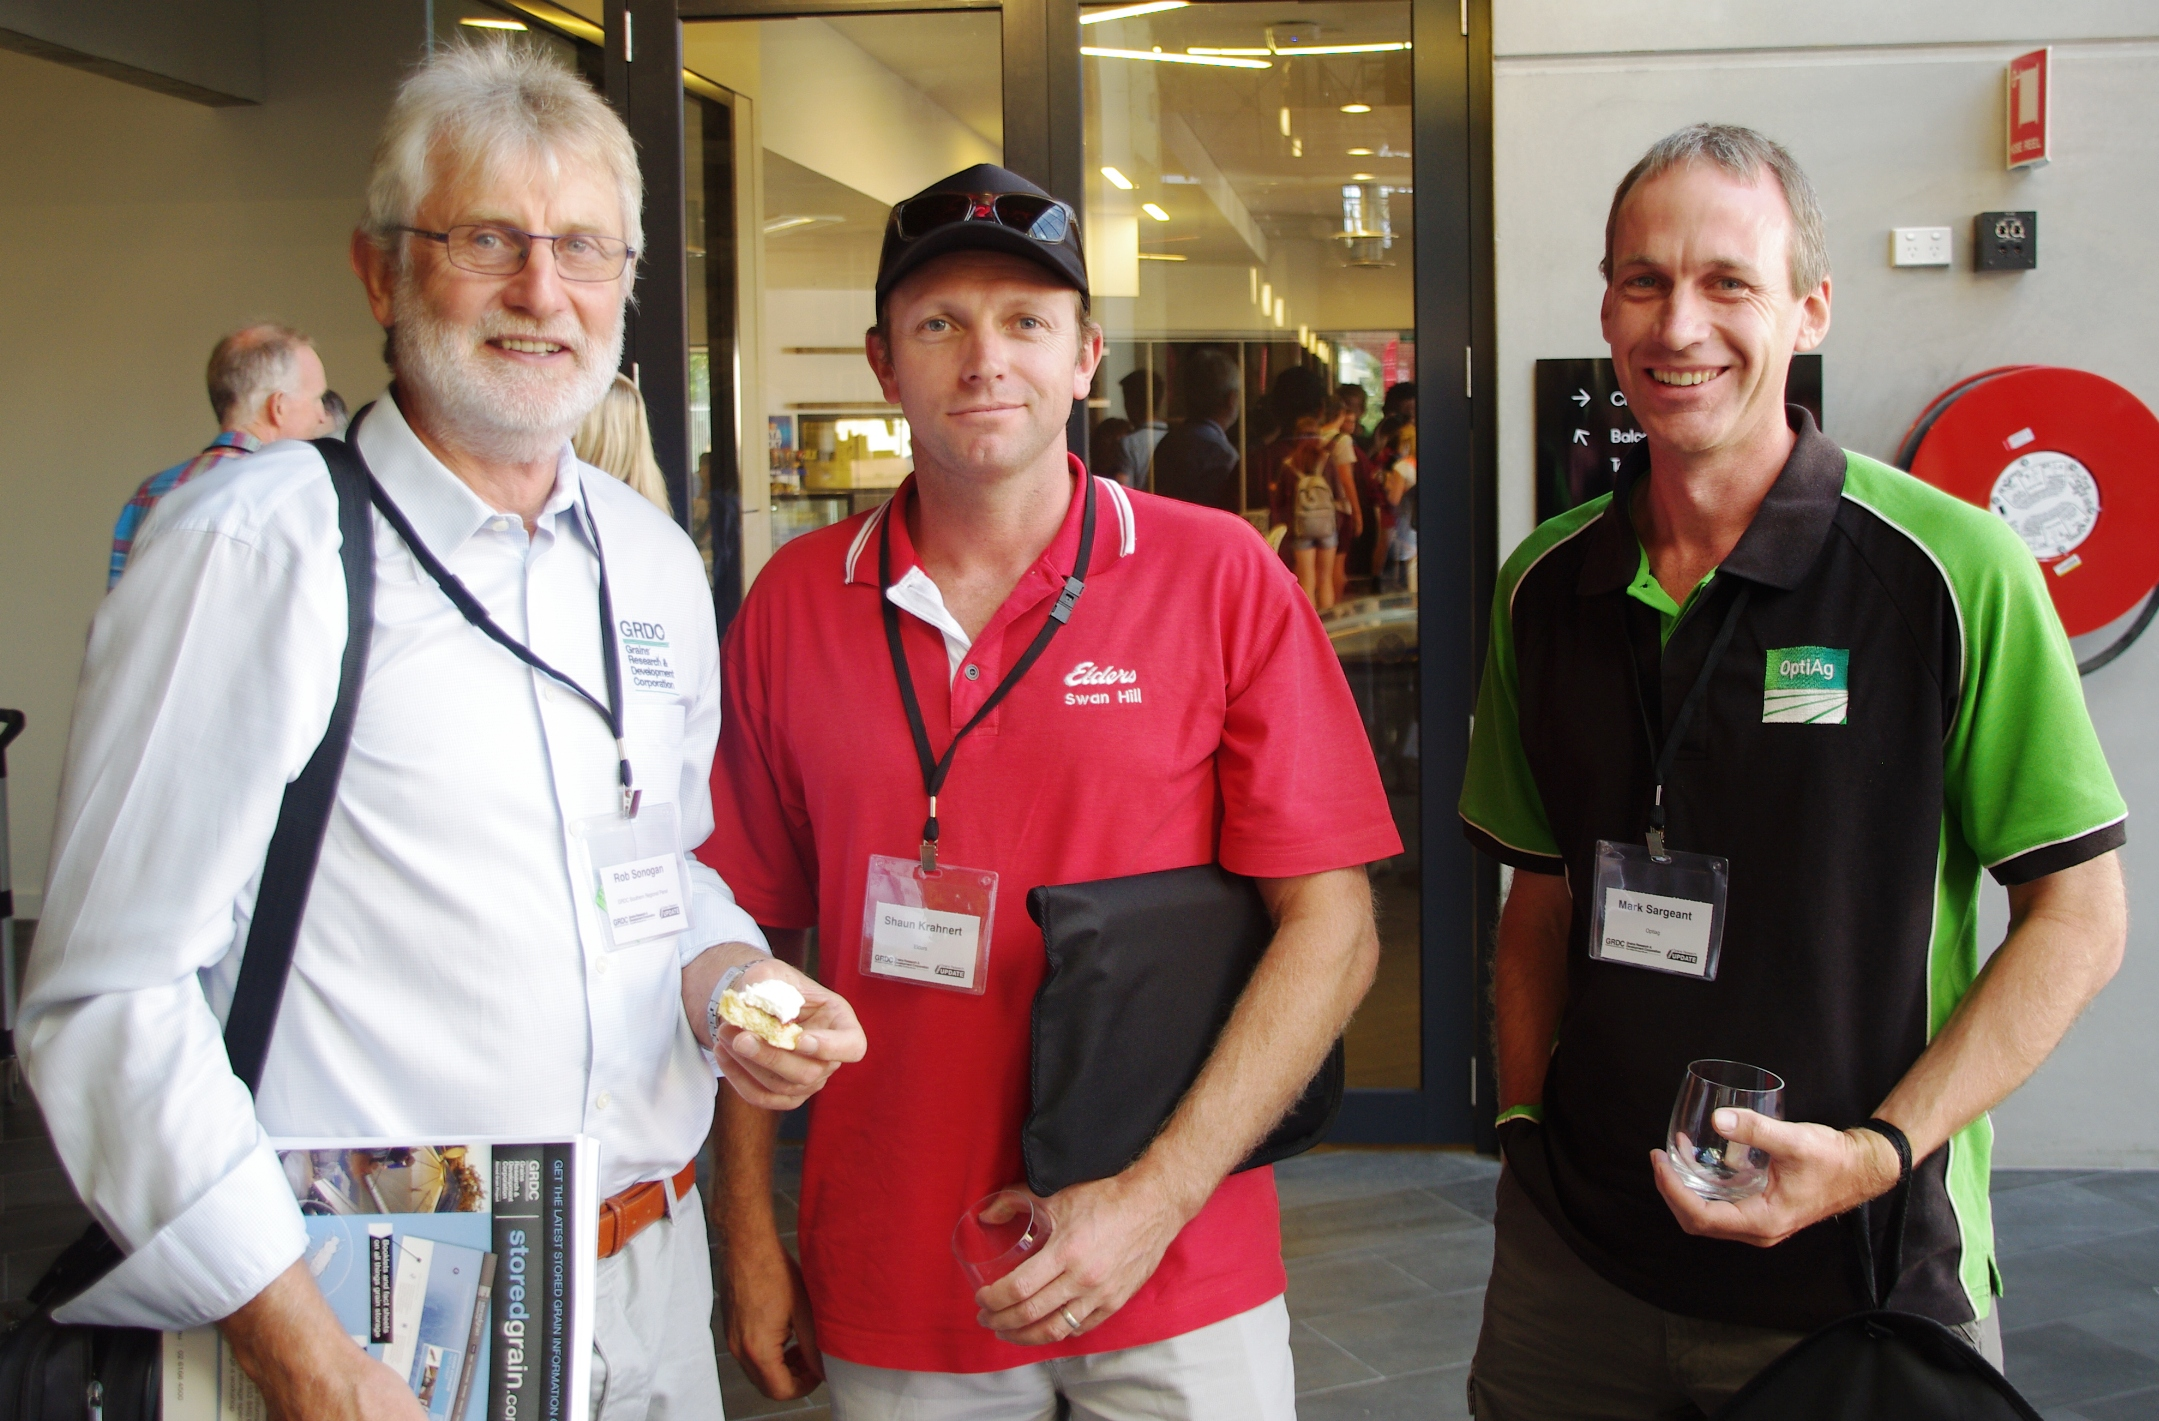 3 men smiling at the camera while present at a conference